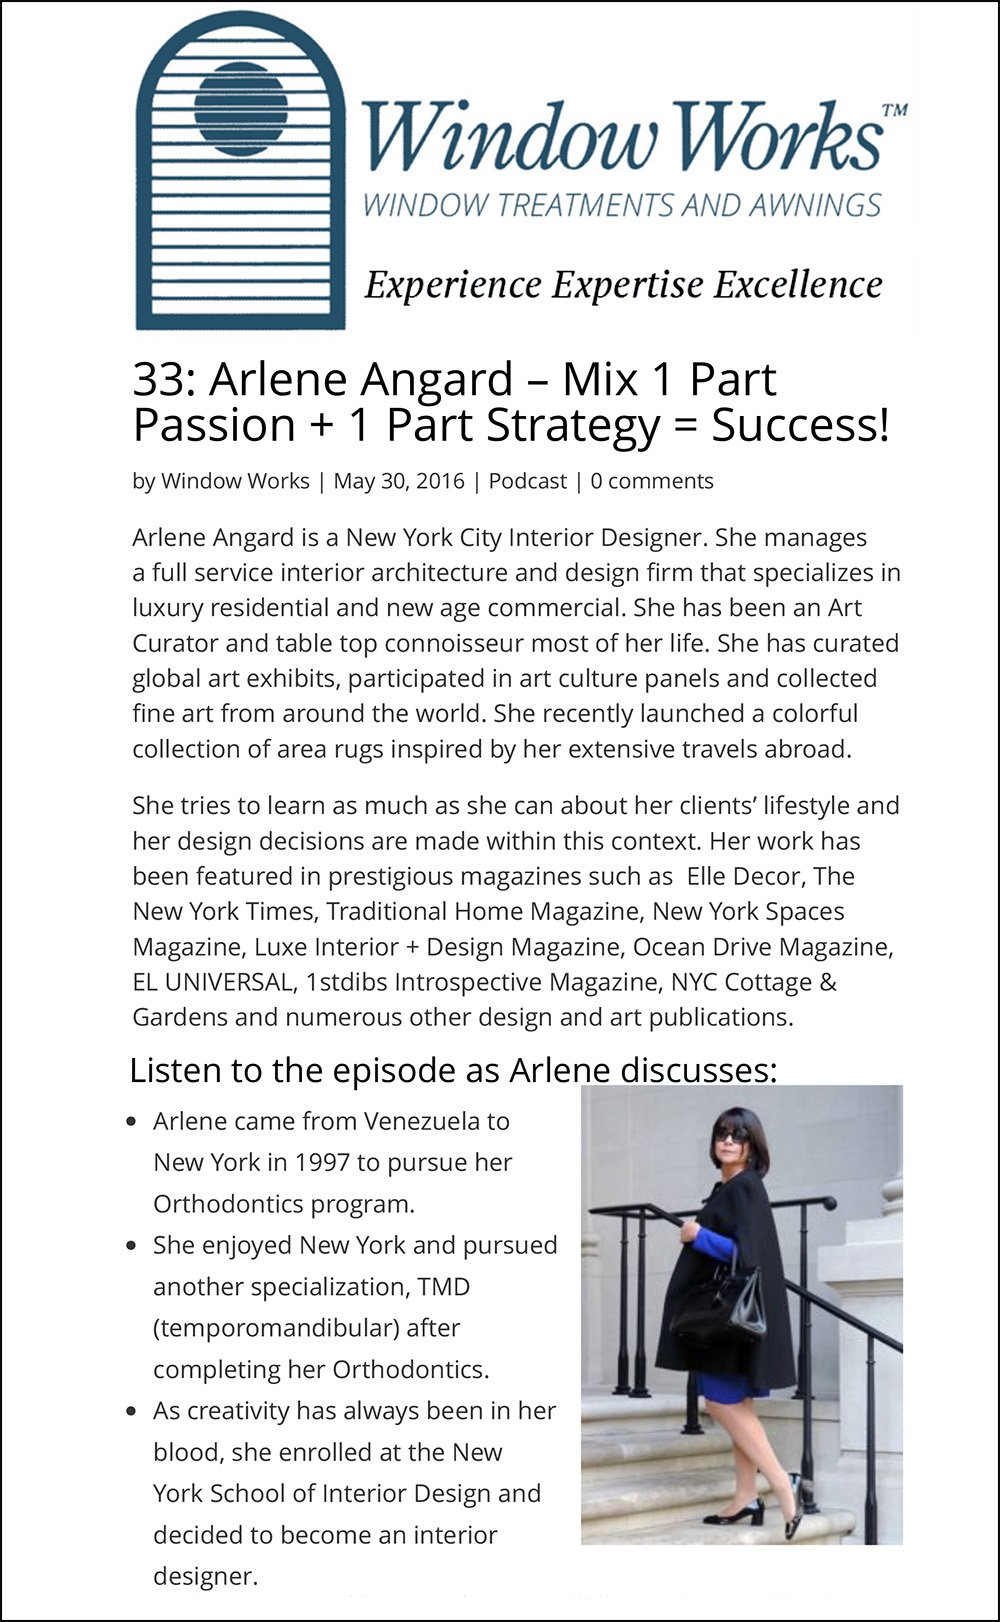 33: Arlene Angard – Mix 1 Part Passion + 1 Part Strategy = Suc